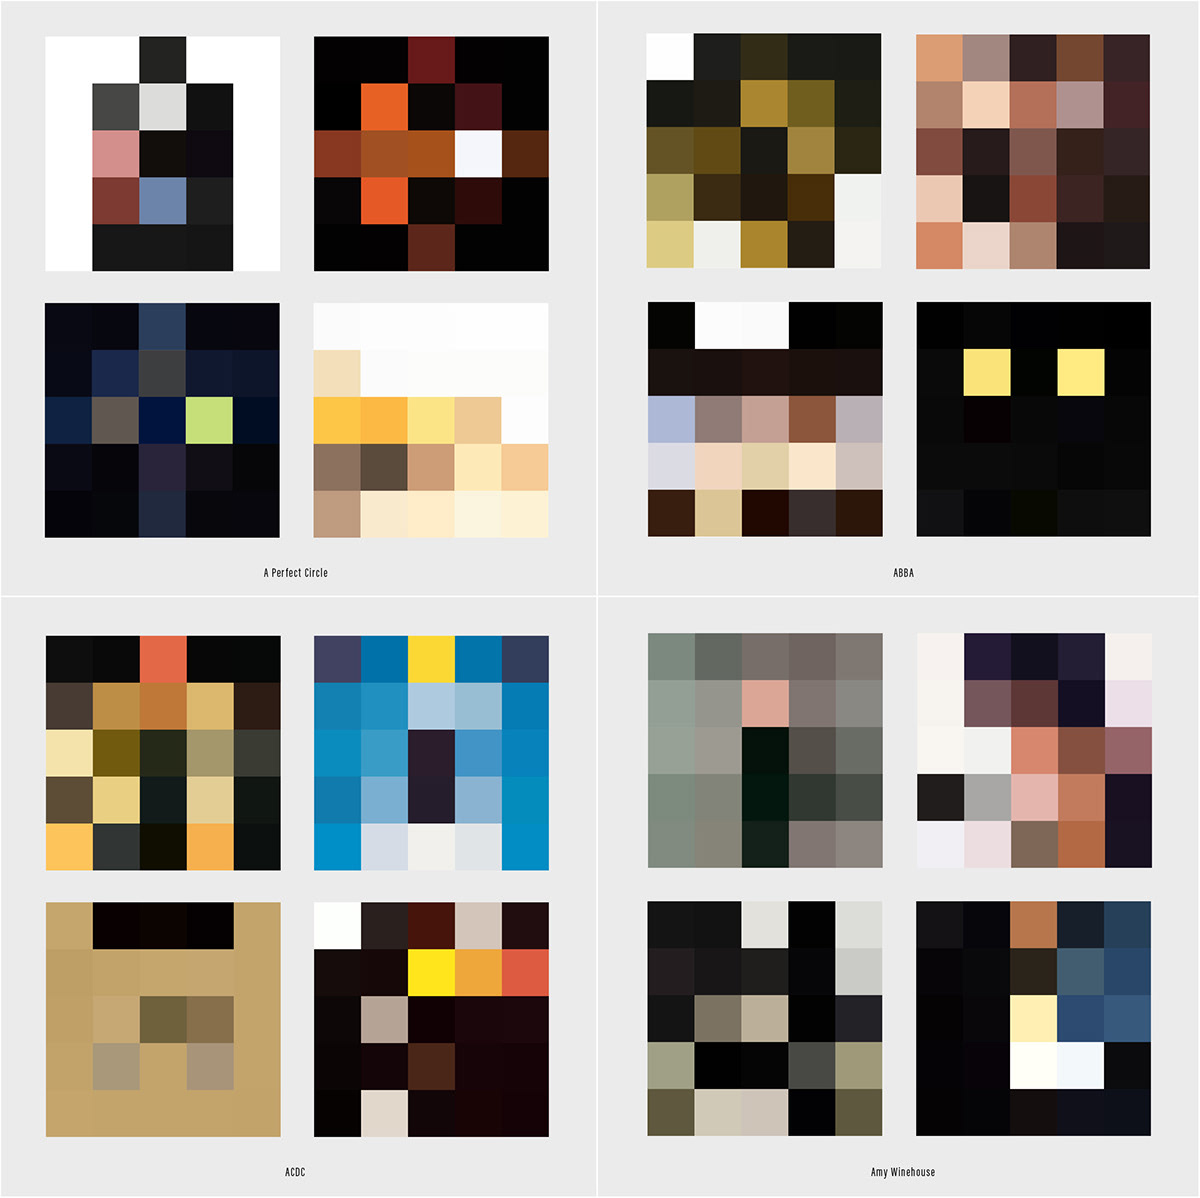 album covers Cover Art color themes abstraction Pixel art Minimalism music design